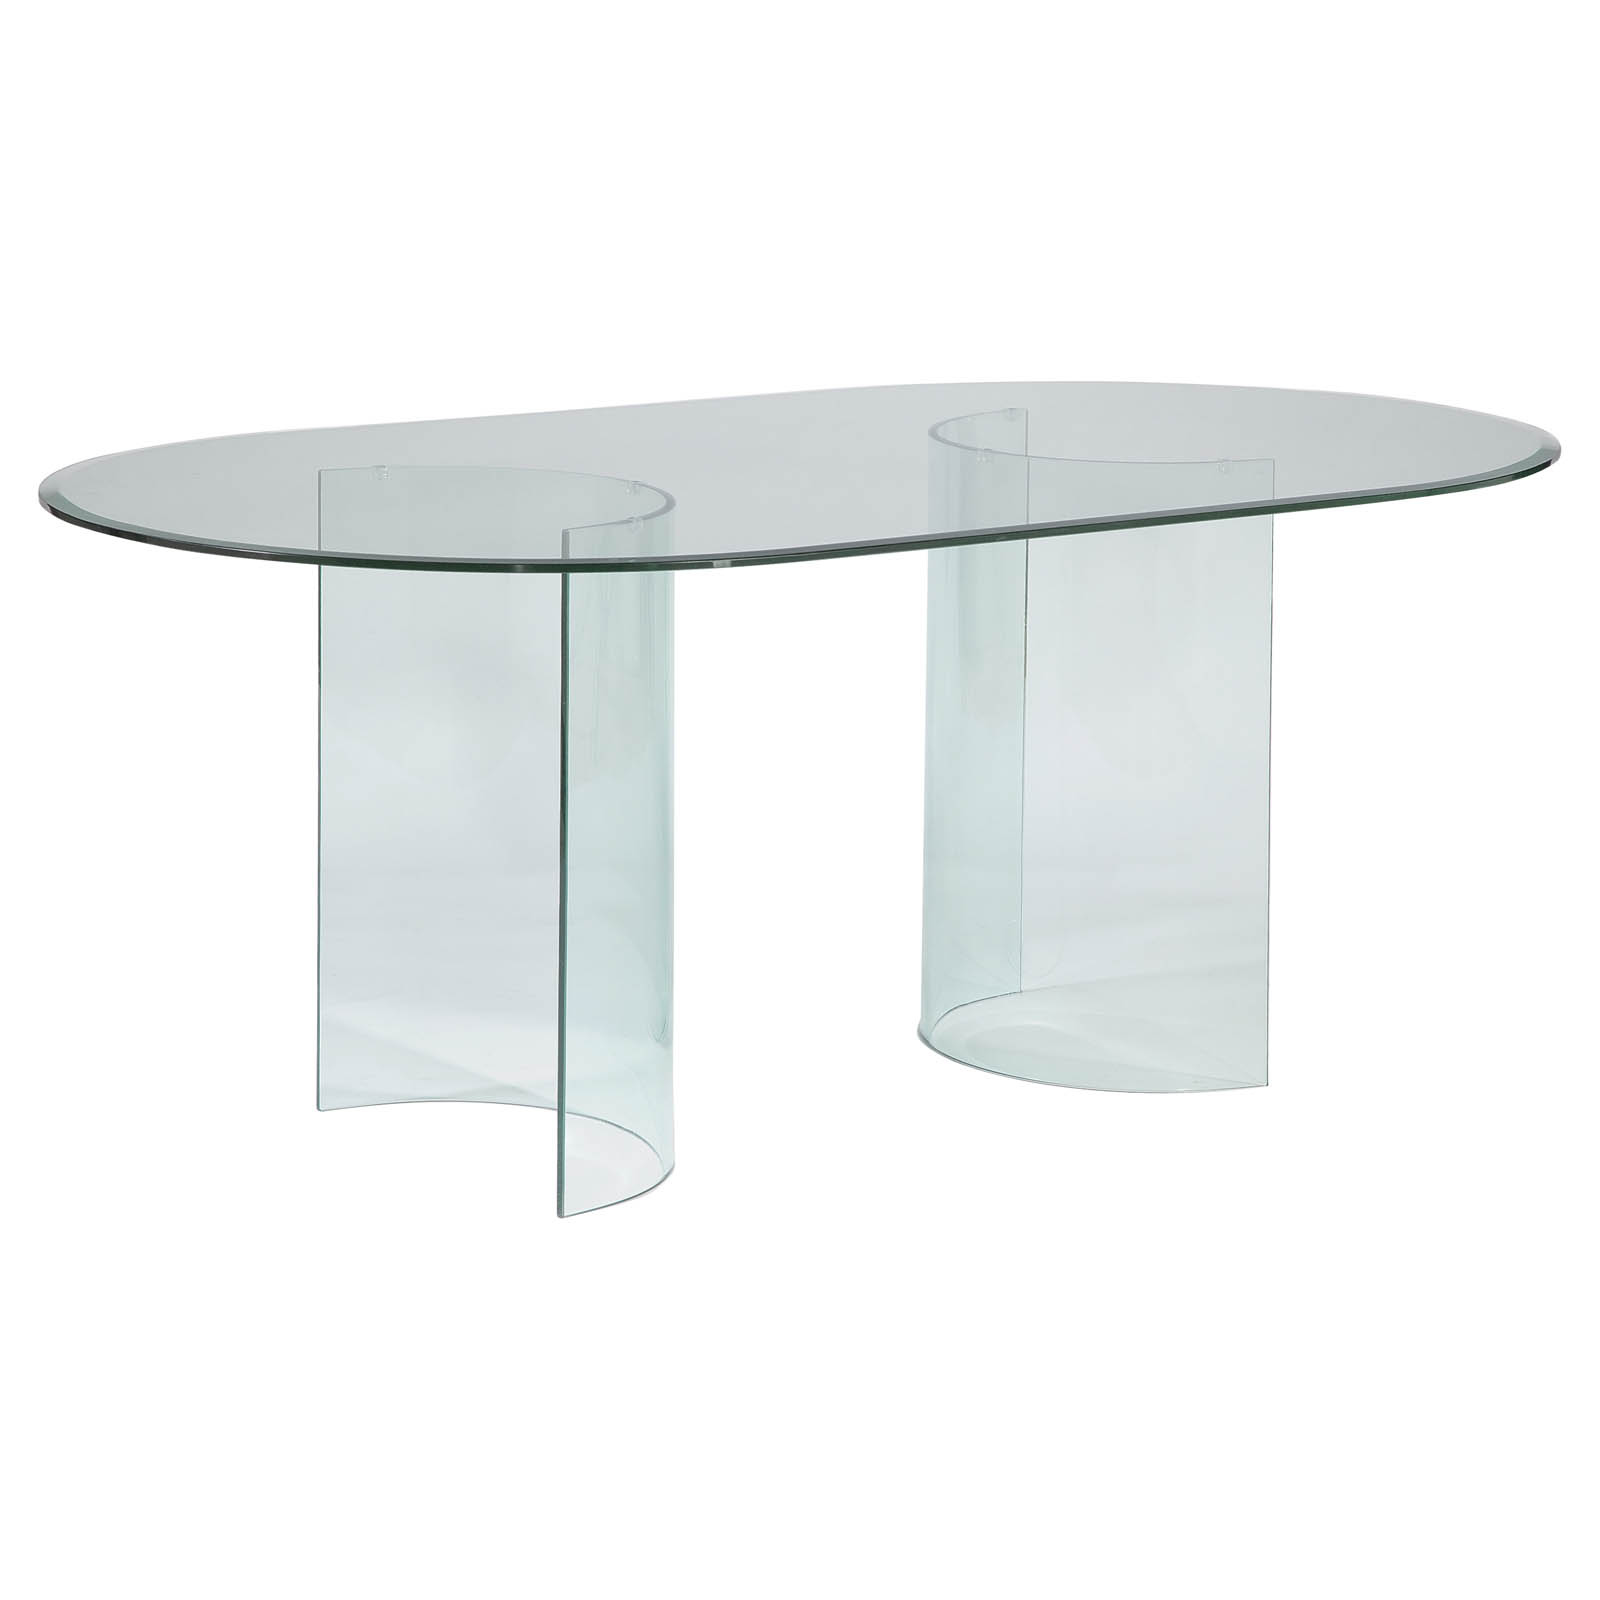 Chintaly carmel oval dining table with glass top dining for Oval glass dining table